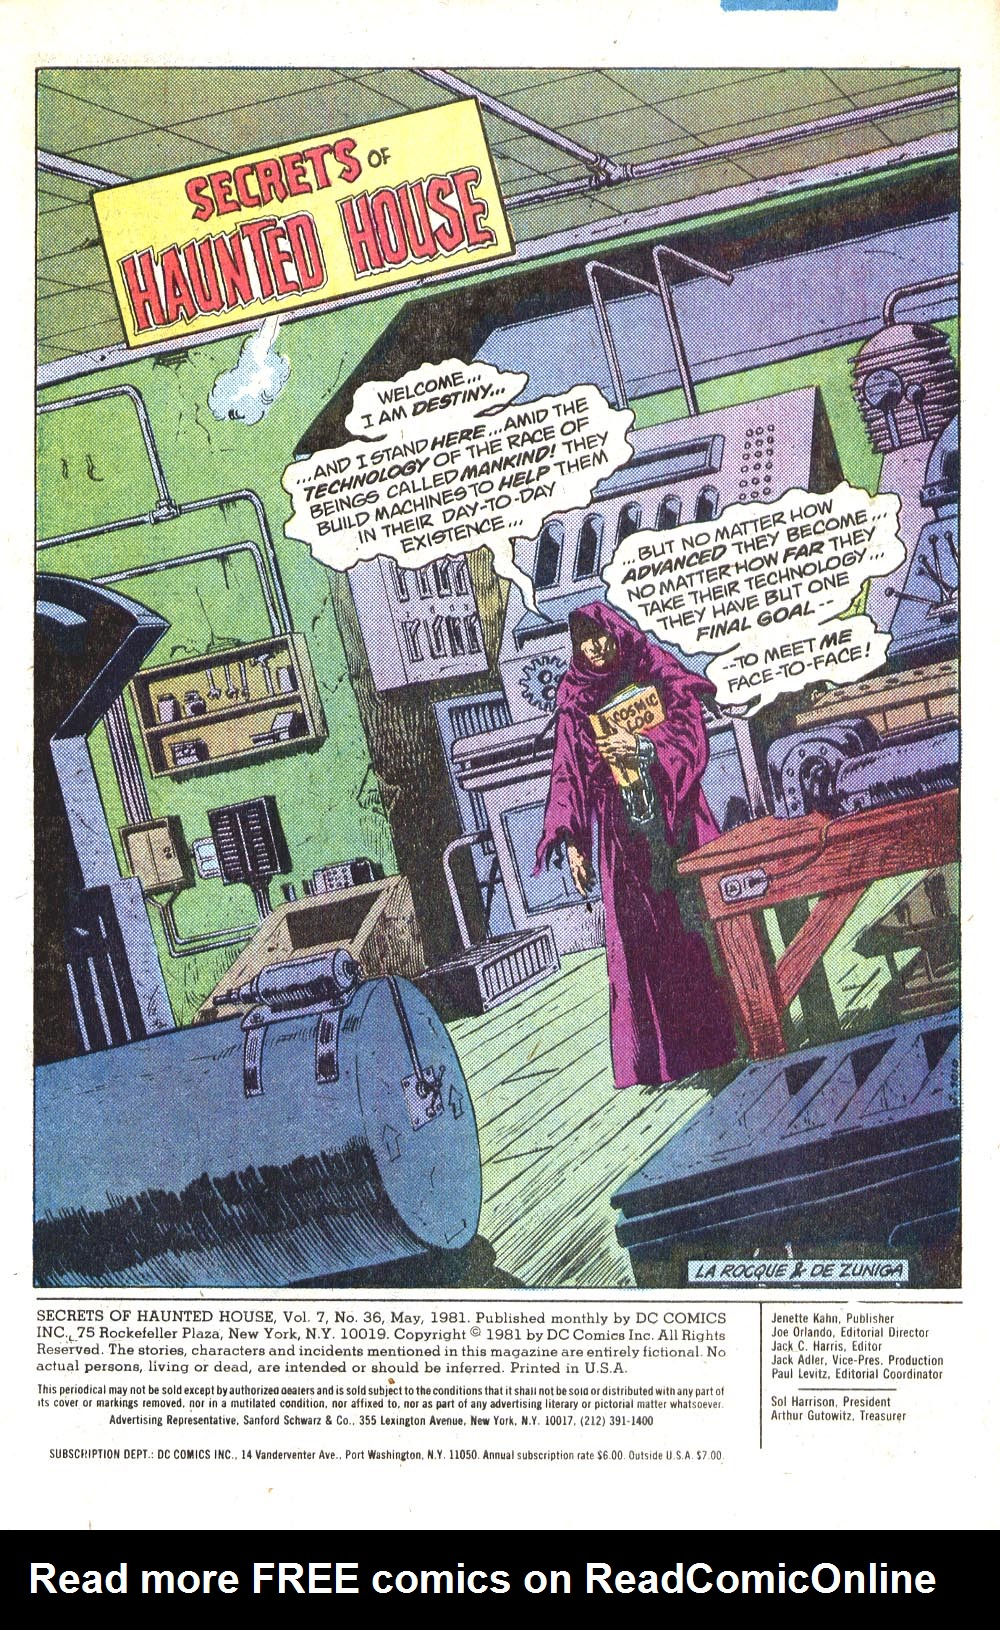 Read online Secrets of Haunted House comic -  Issue #36 - 2